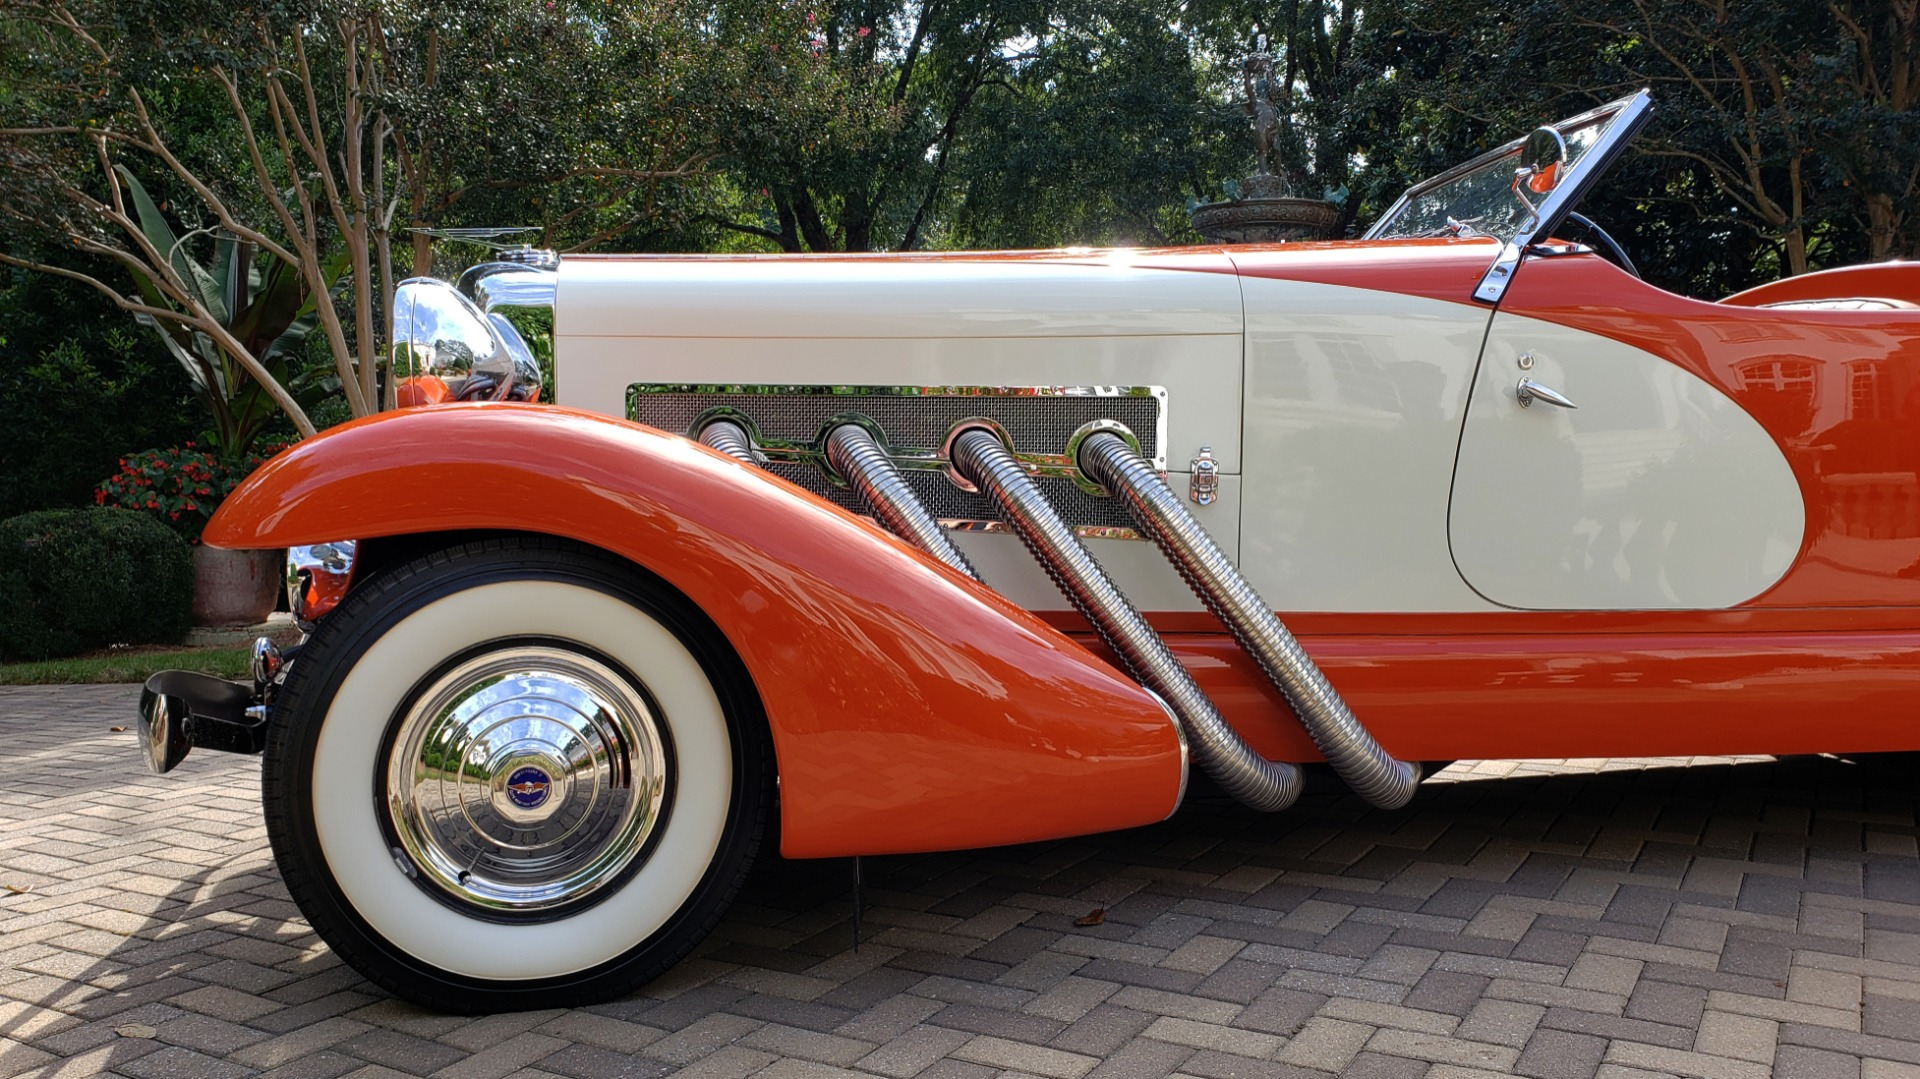 Used 1979 Duesenberg 1933 SJ BOATTAIL SPEEDSTER REPLICA / FORD V8 / AUTO TRANS / SUPER CLEAN for sale $379,000 at Formula Imports in Charlotte NC 28227 11